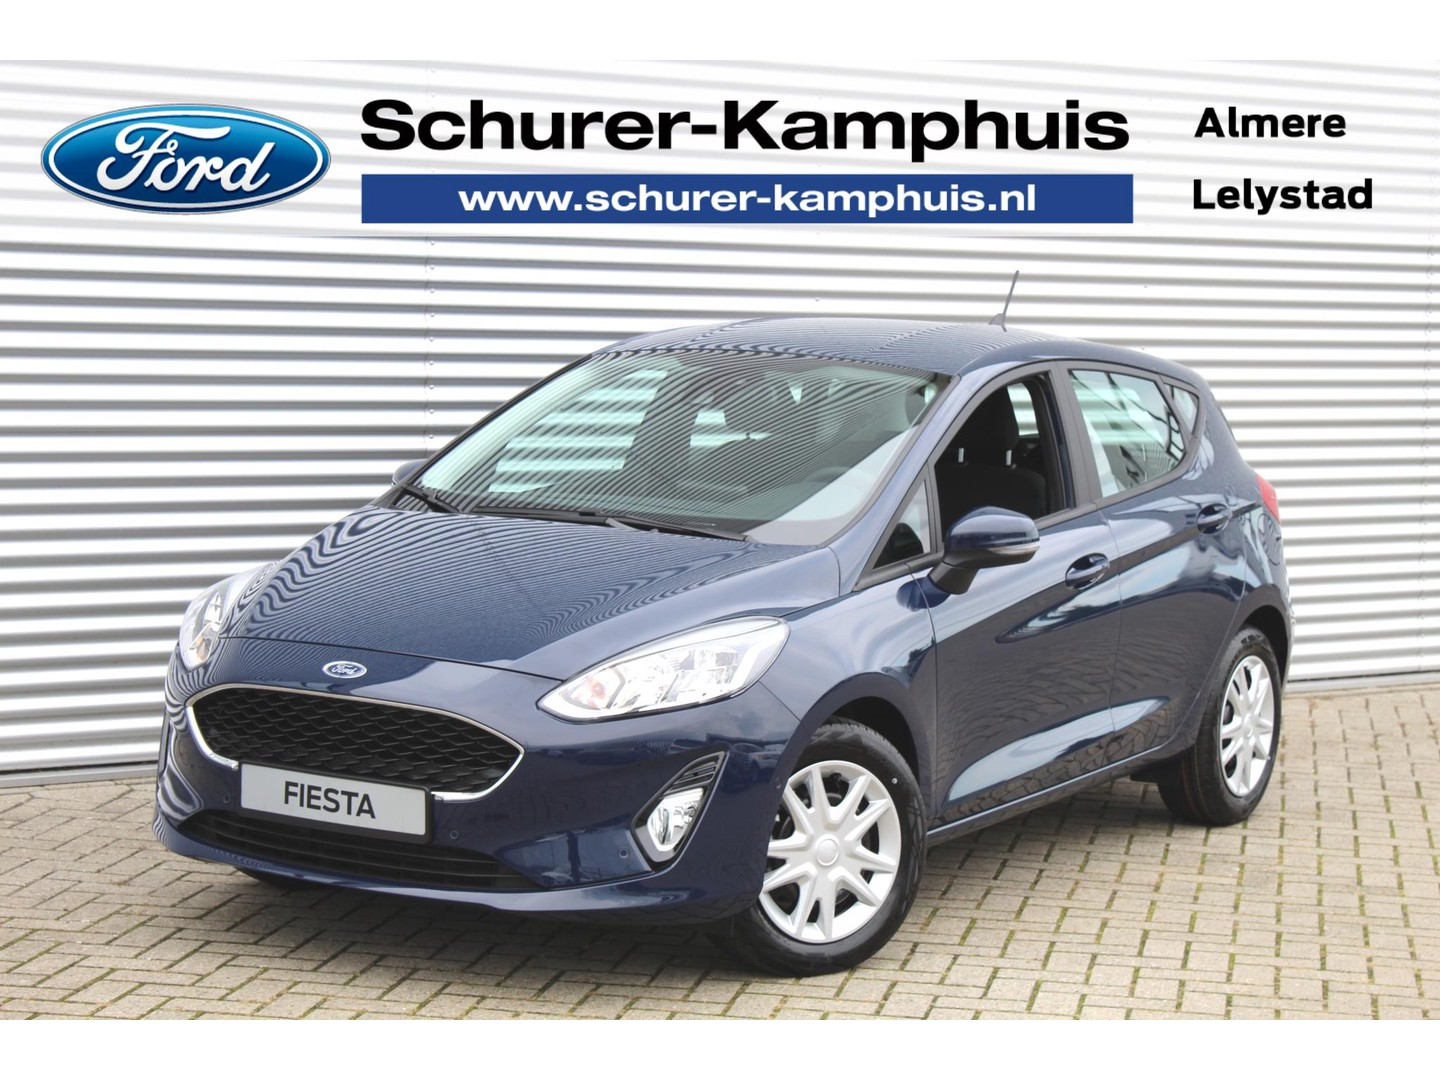 Ford Fiesta 1.0 ecoboost (95pk) connected navigatie/apple carplay& android auto/cruise control